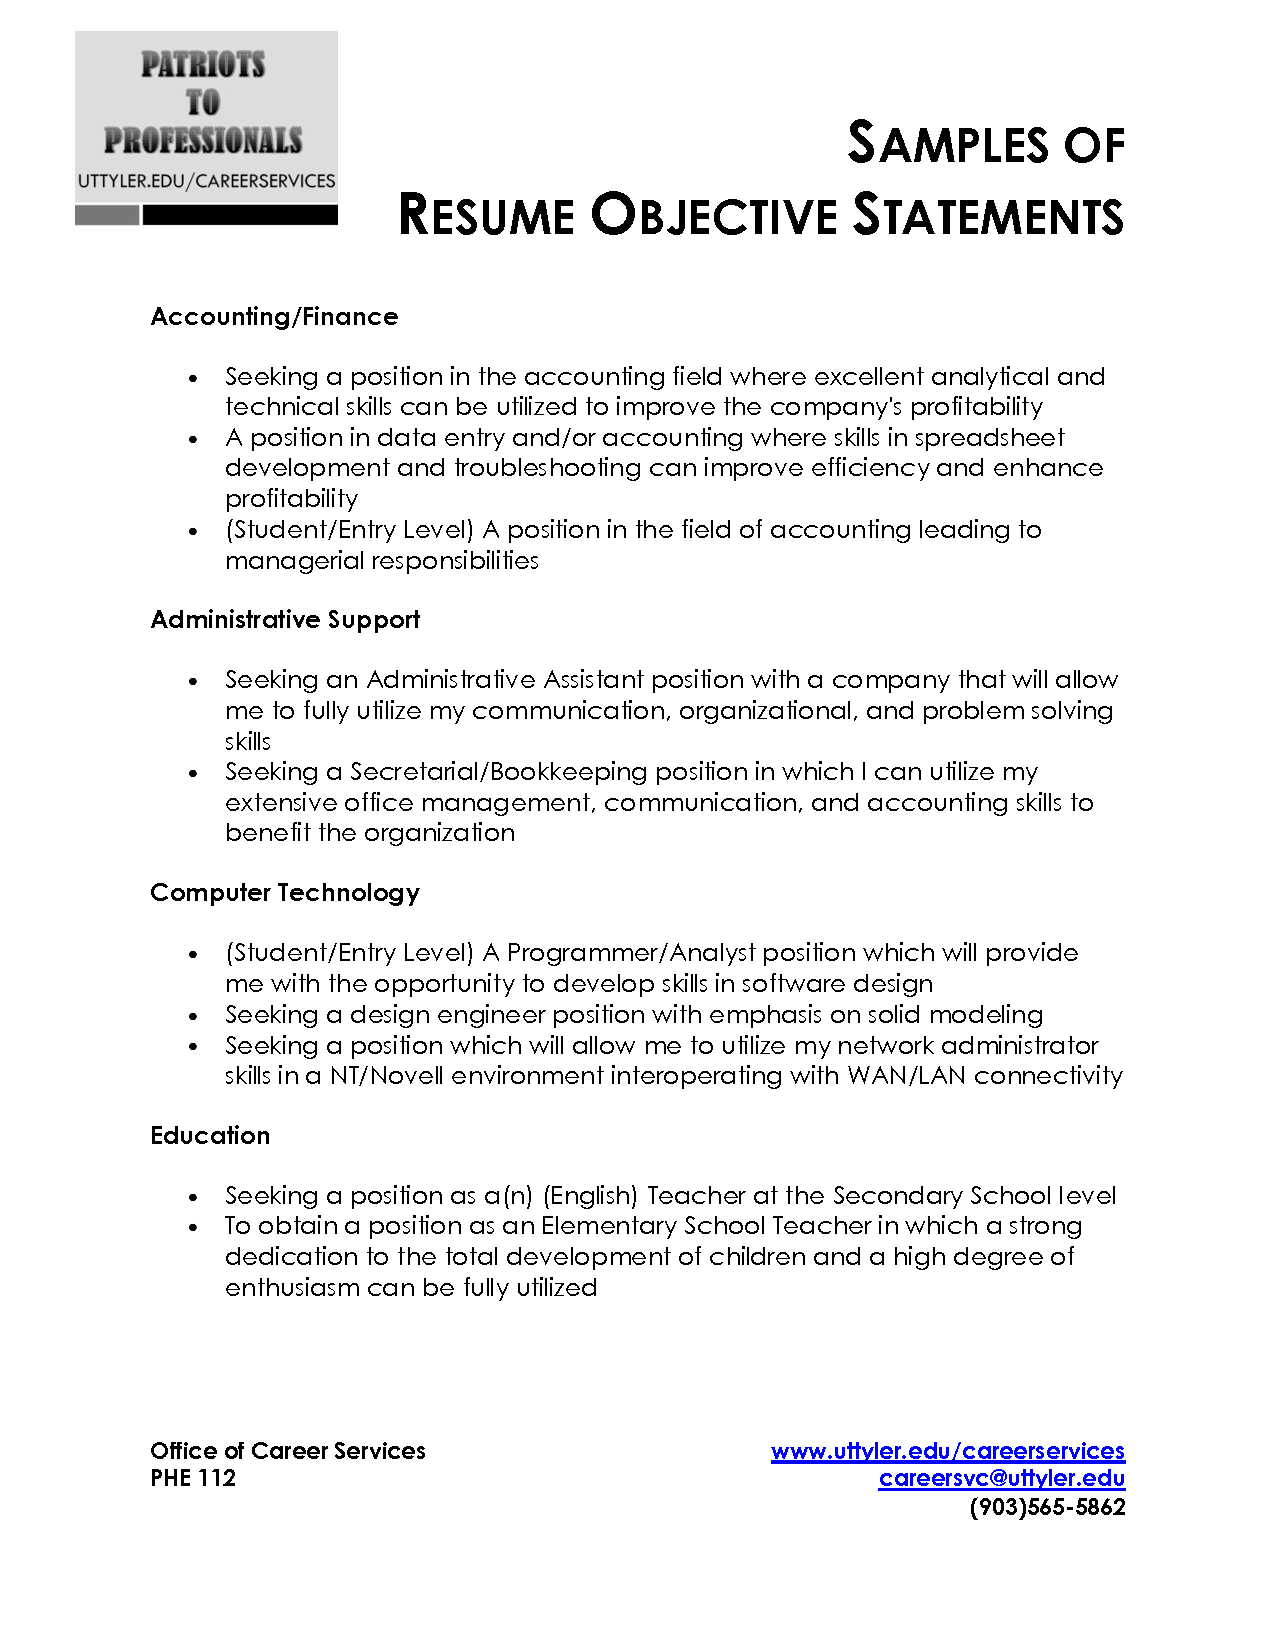 Accounting Internship Resume Objective Classy Mardiyono Semair85 On Pinterest